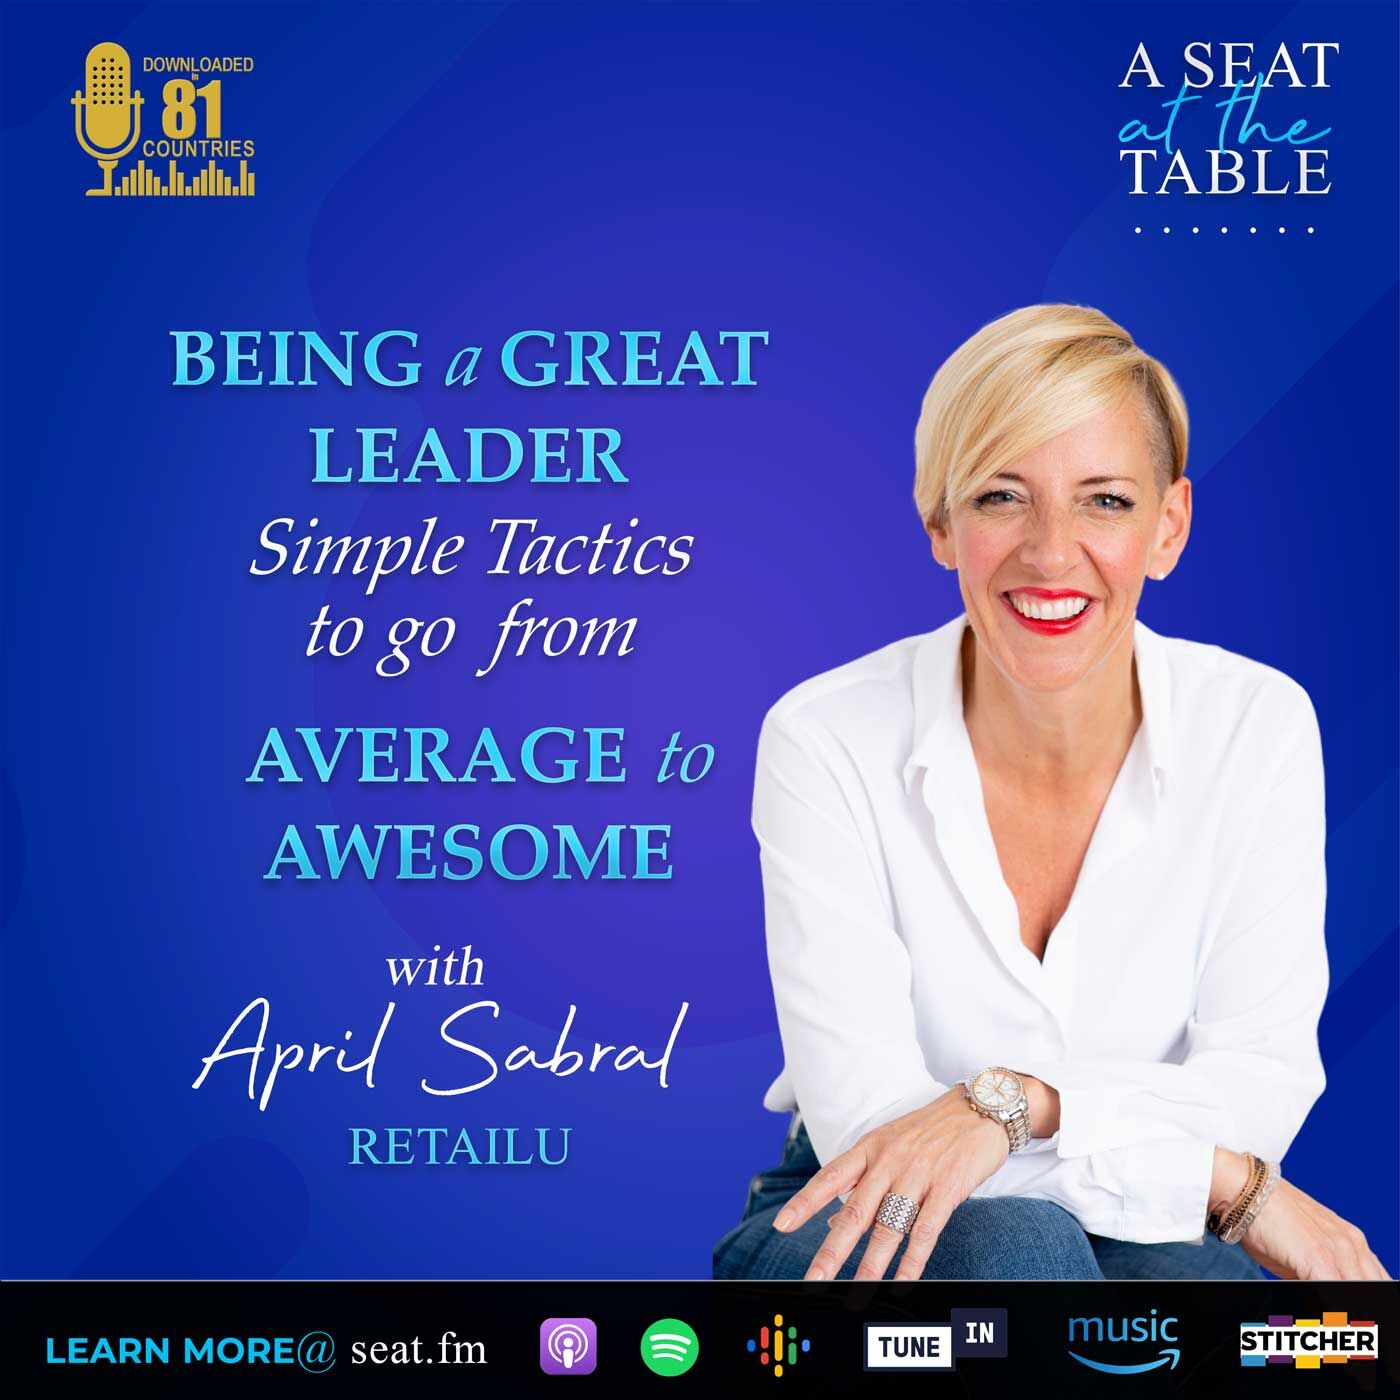 Being a Great Leader - Simple Tactics to Go from Average to Awesome!